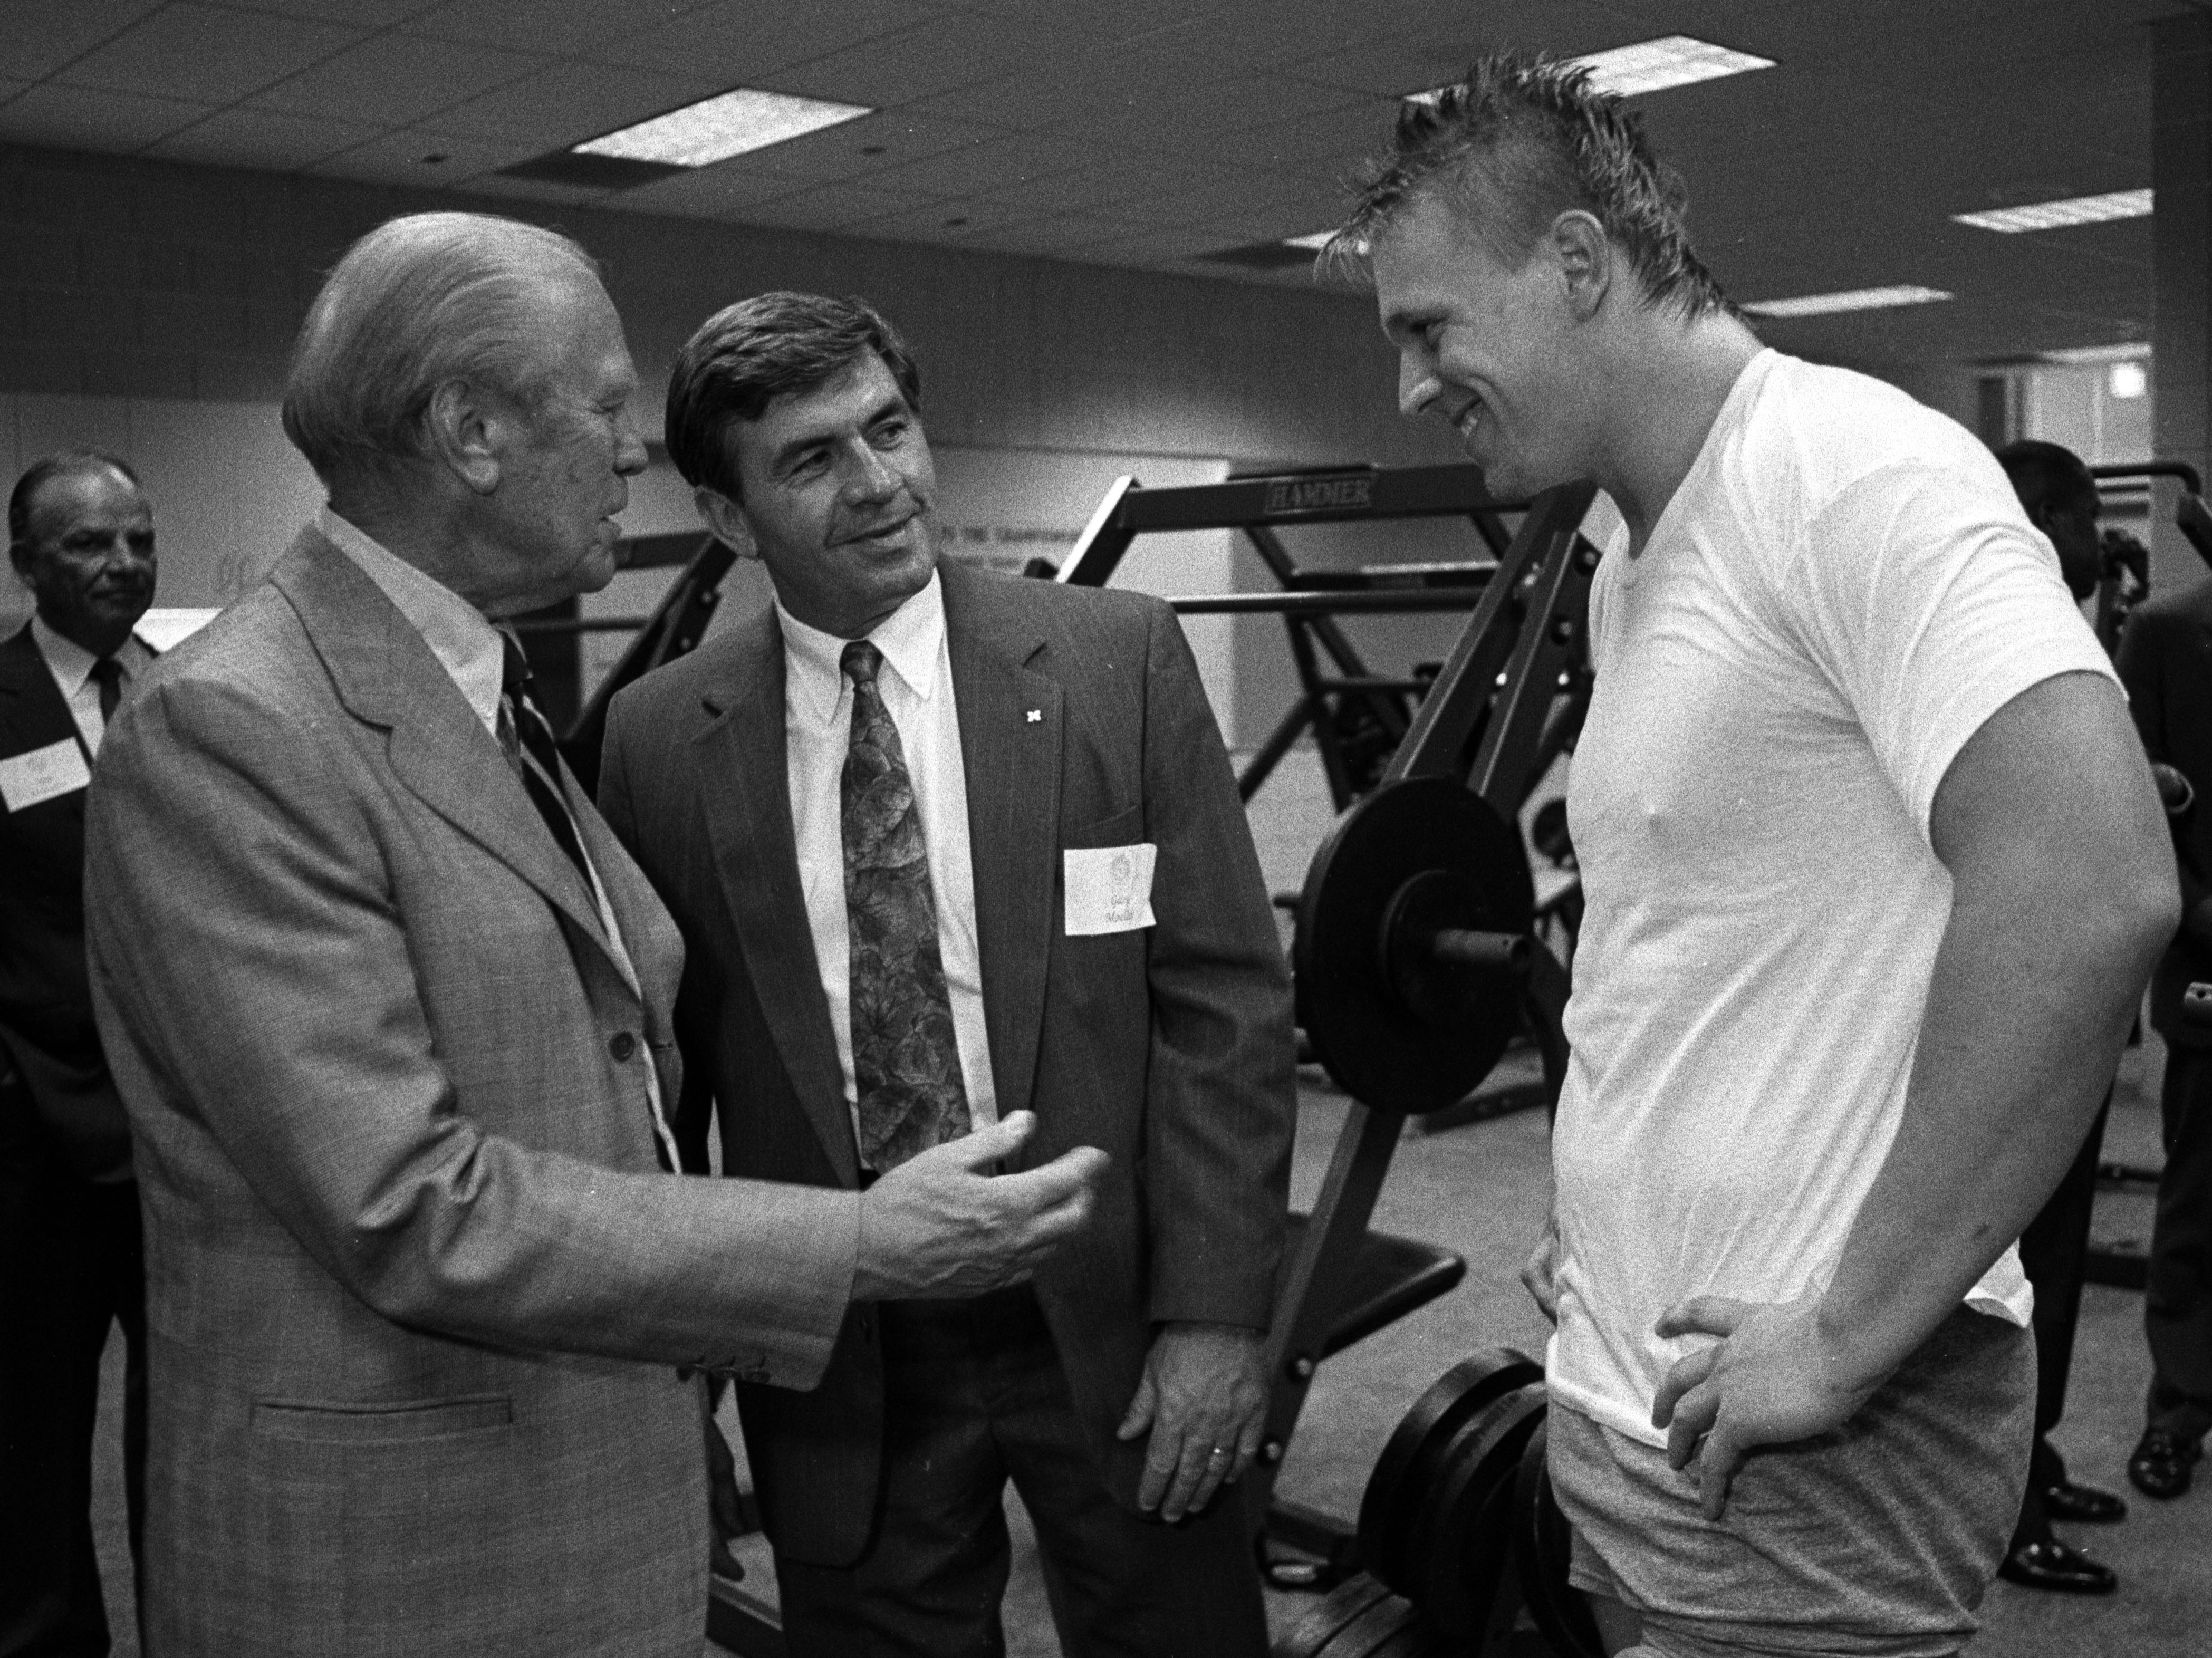 Gerald Ford and Coach Gary Moeller with a member of the Michigan Team in Weight Room, At the Opening of Schembechler Hall, June 1991 image